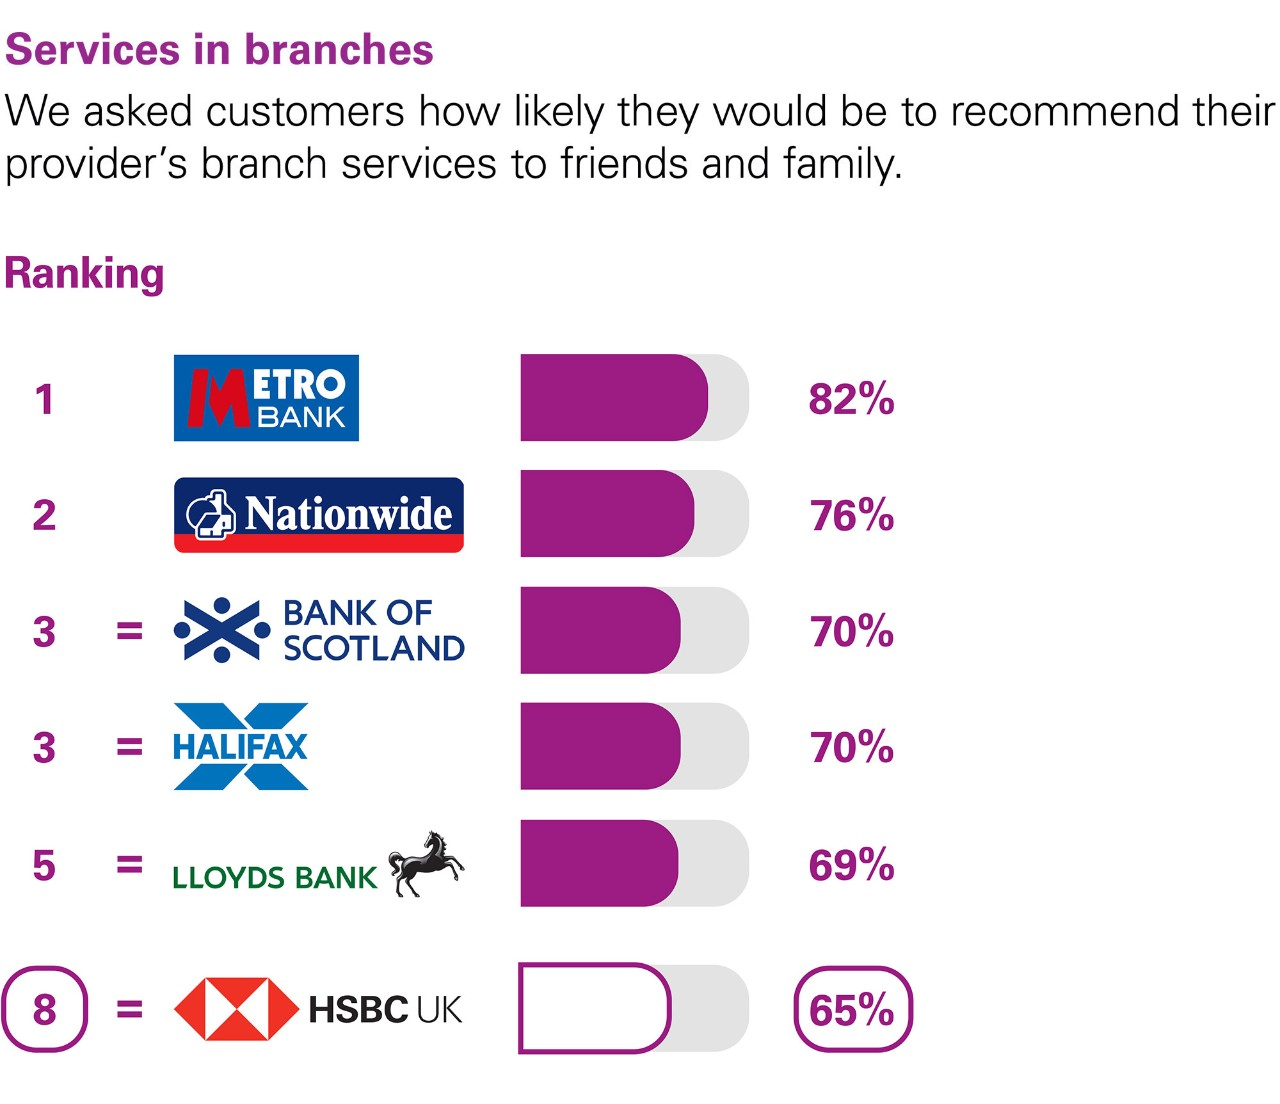 Services in branches. We asked customers how likely they would be to recommend their provider's branch services to friends and family. Ranking: 1 Metro Bank 82%. 2 Nationwide 76%. 3 Equal Bank of Scotland and Halifax  70%. 5 Equal Lloyds Bank  69%. 8 Equal HSBC UK 65%.